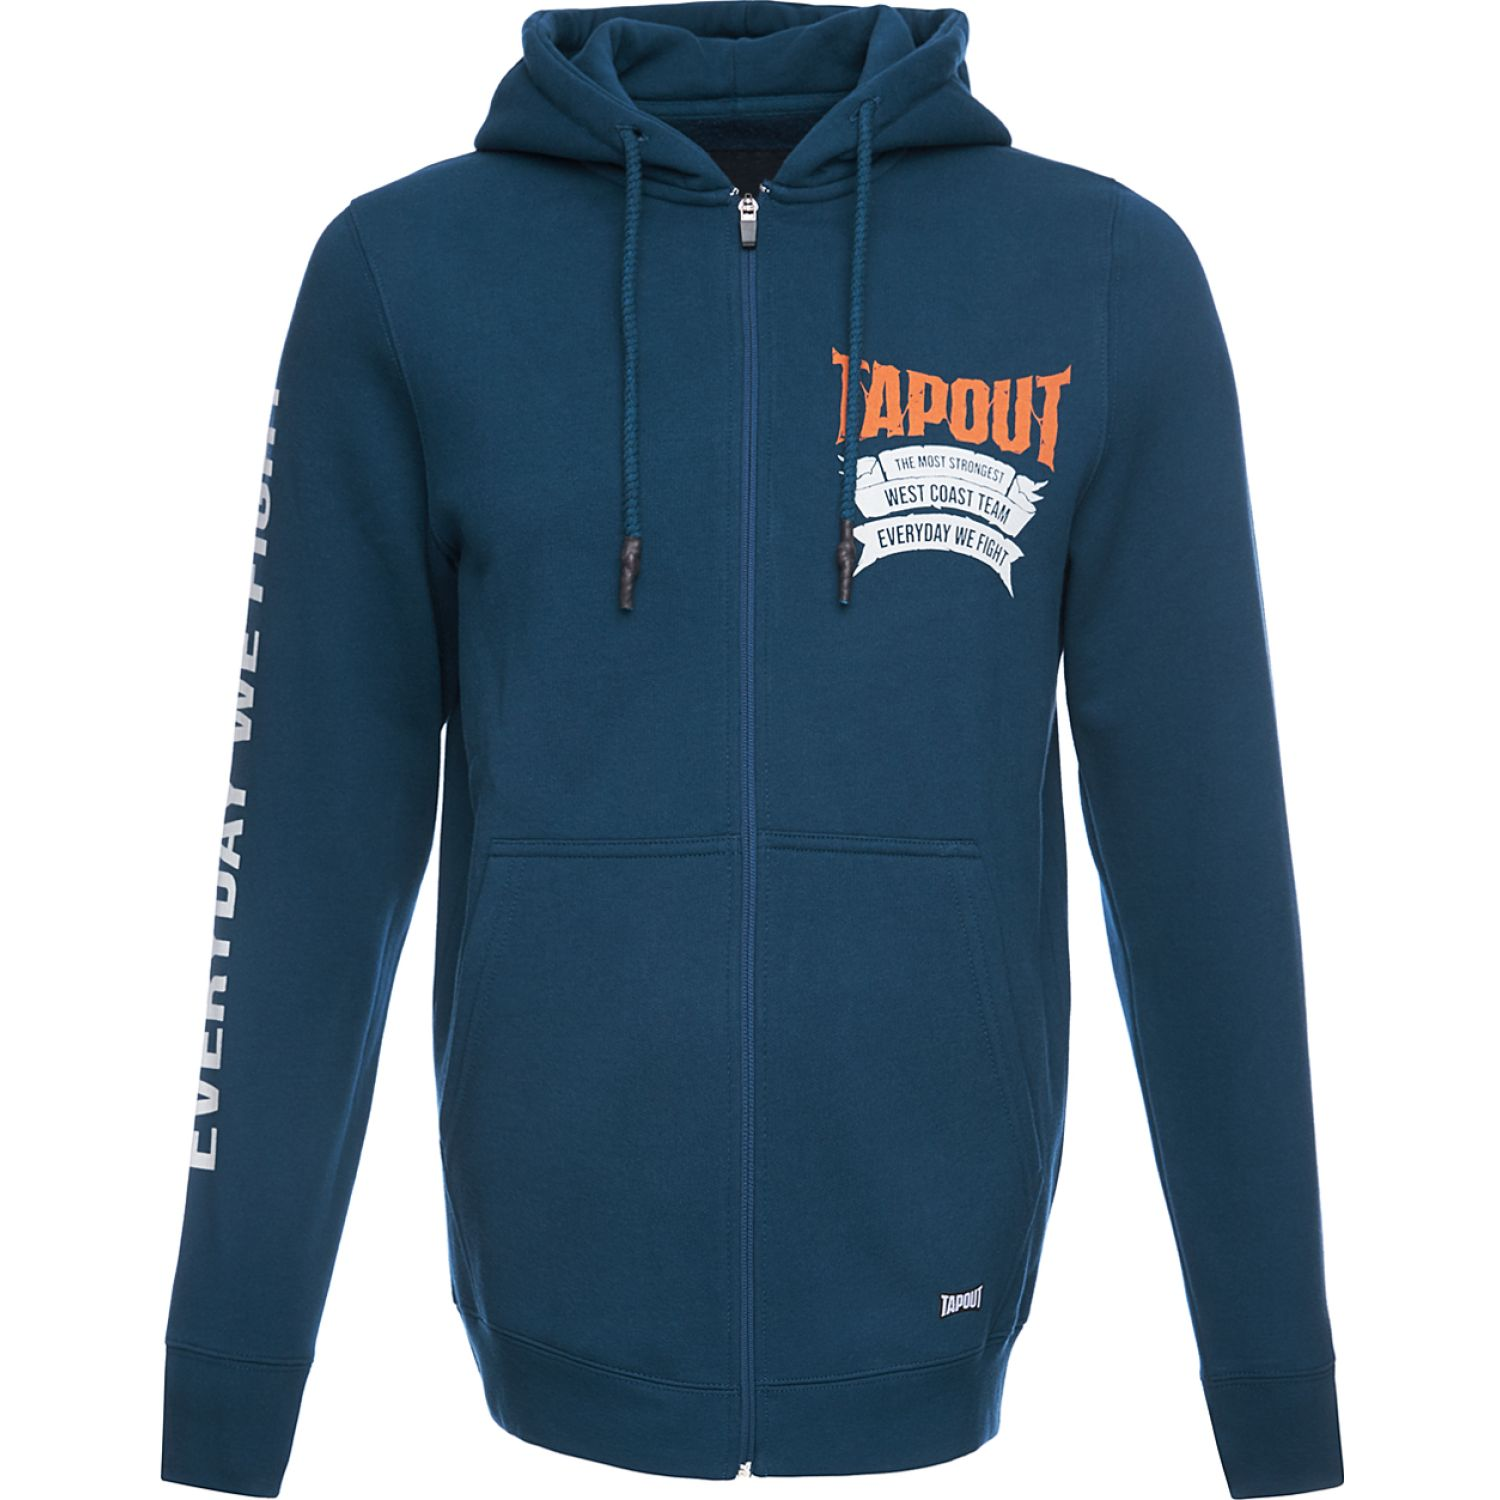 TAPOUT POLERA CASUAL STRONGEST ALGODÓN Azul Hoodies y Sweaters Fashion